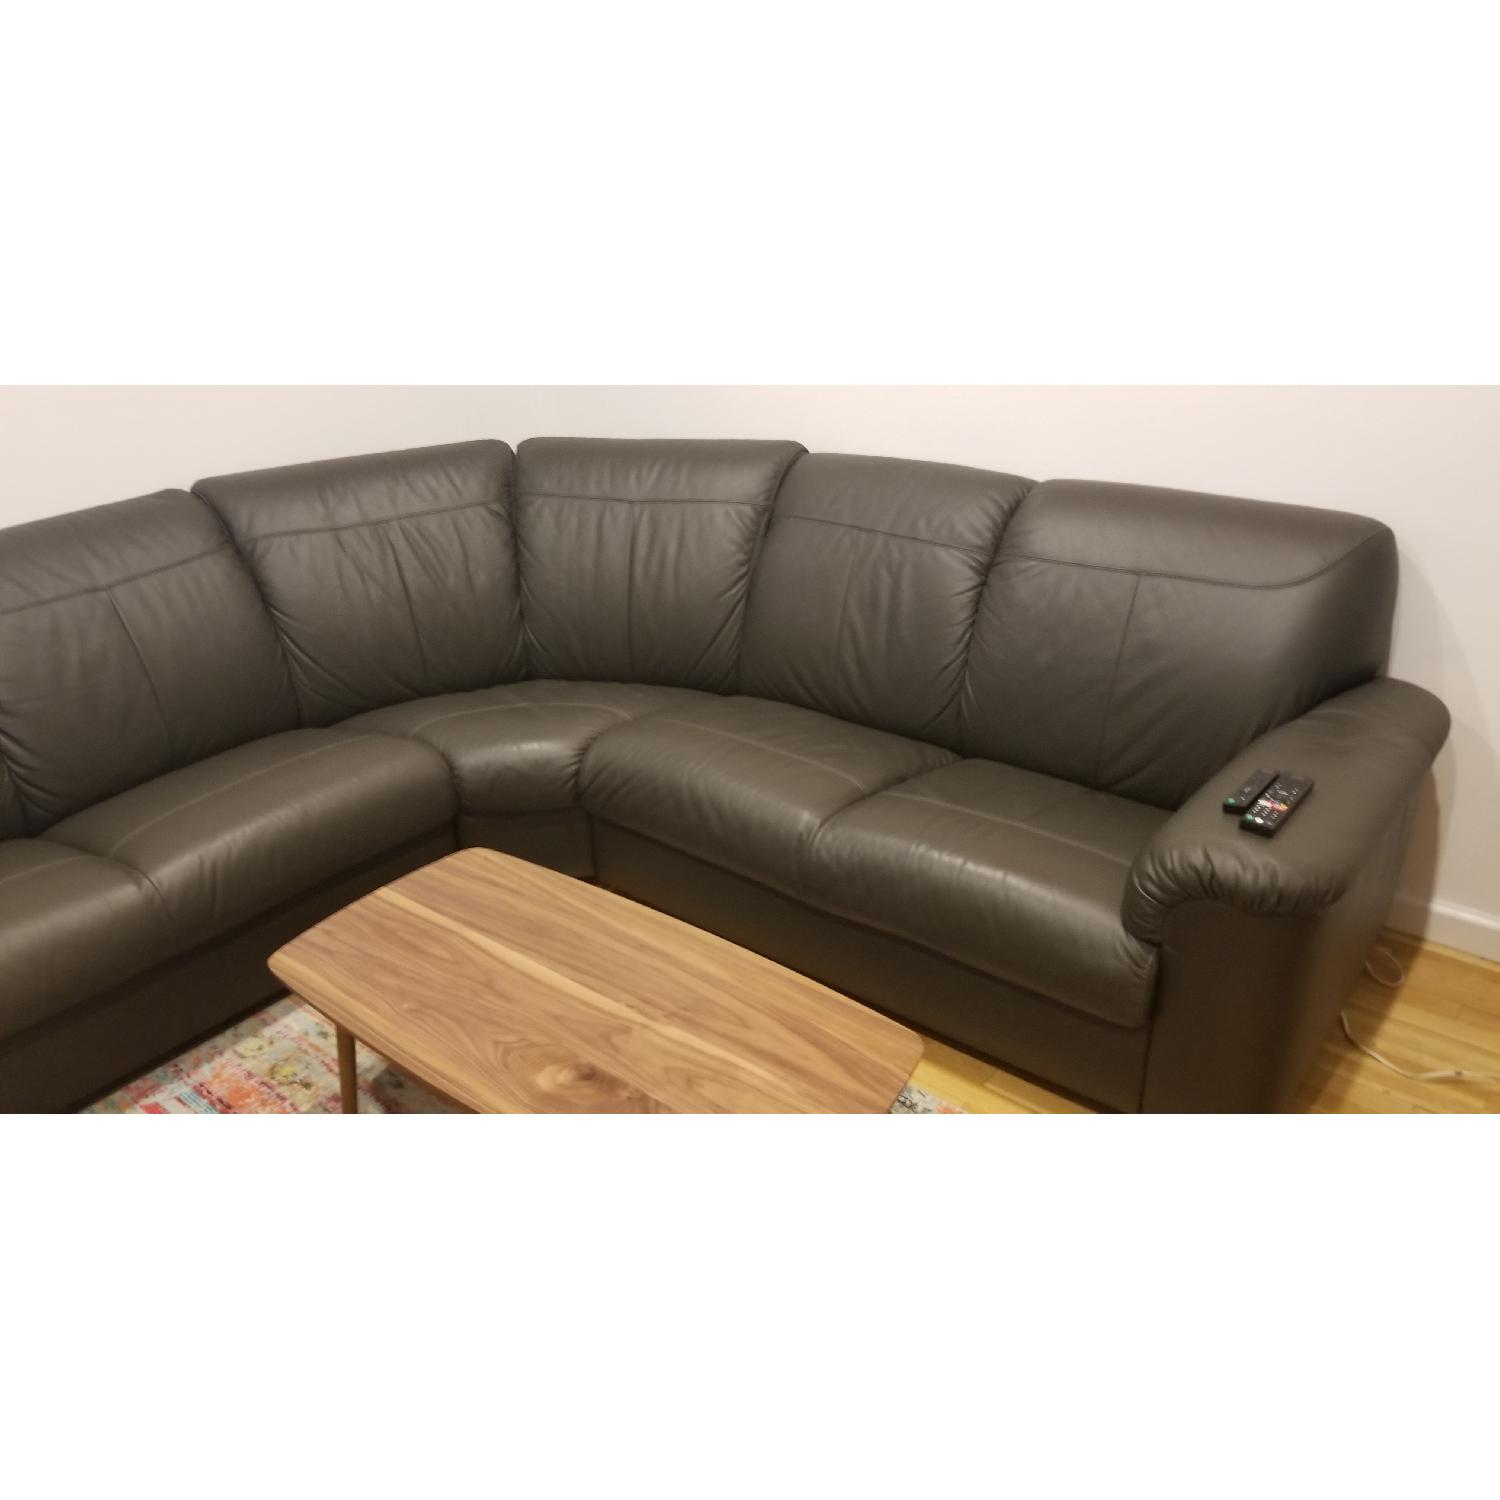 Ikea Timsfors Faux Leather Sectional Sofa - image-2